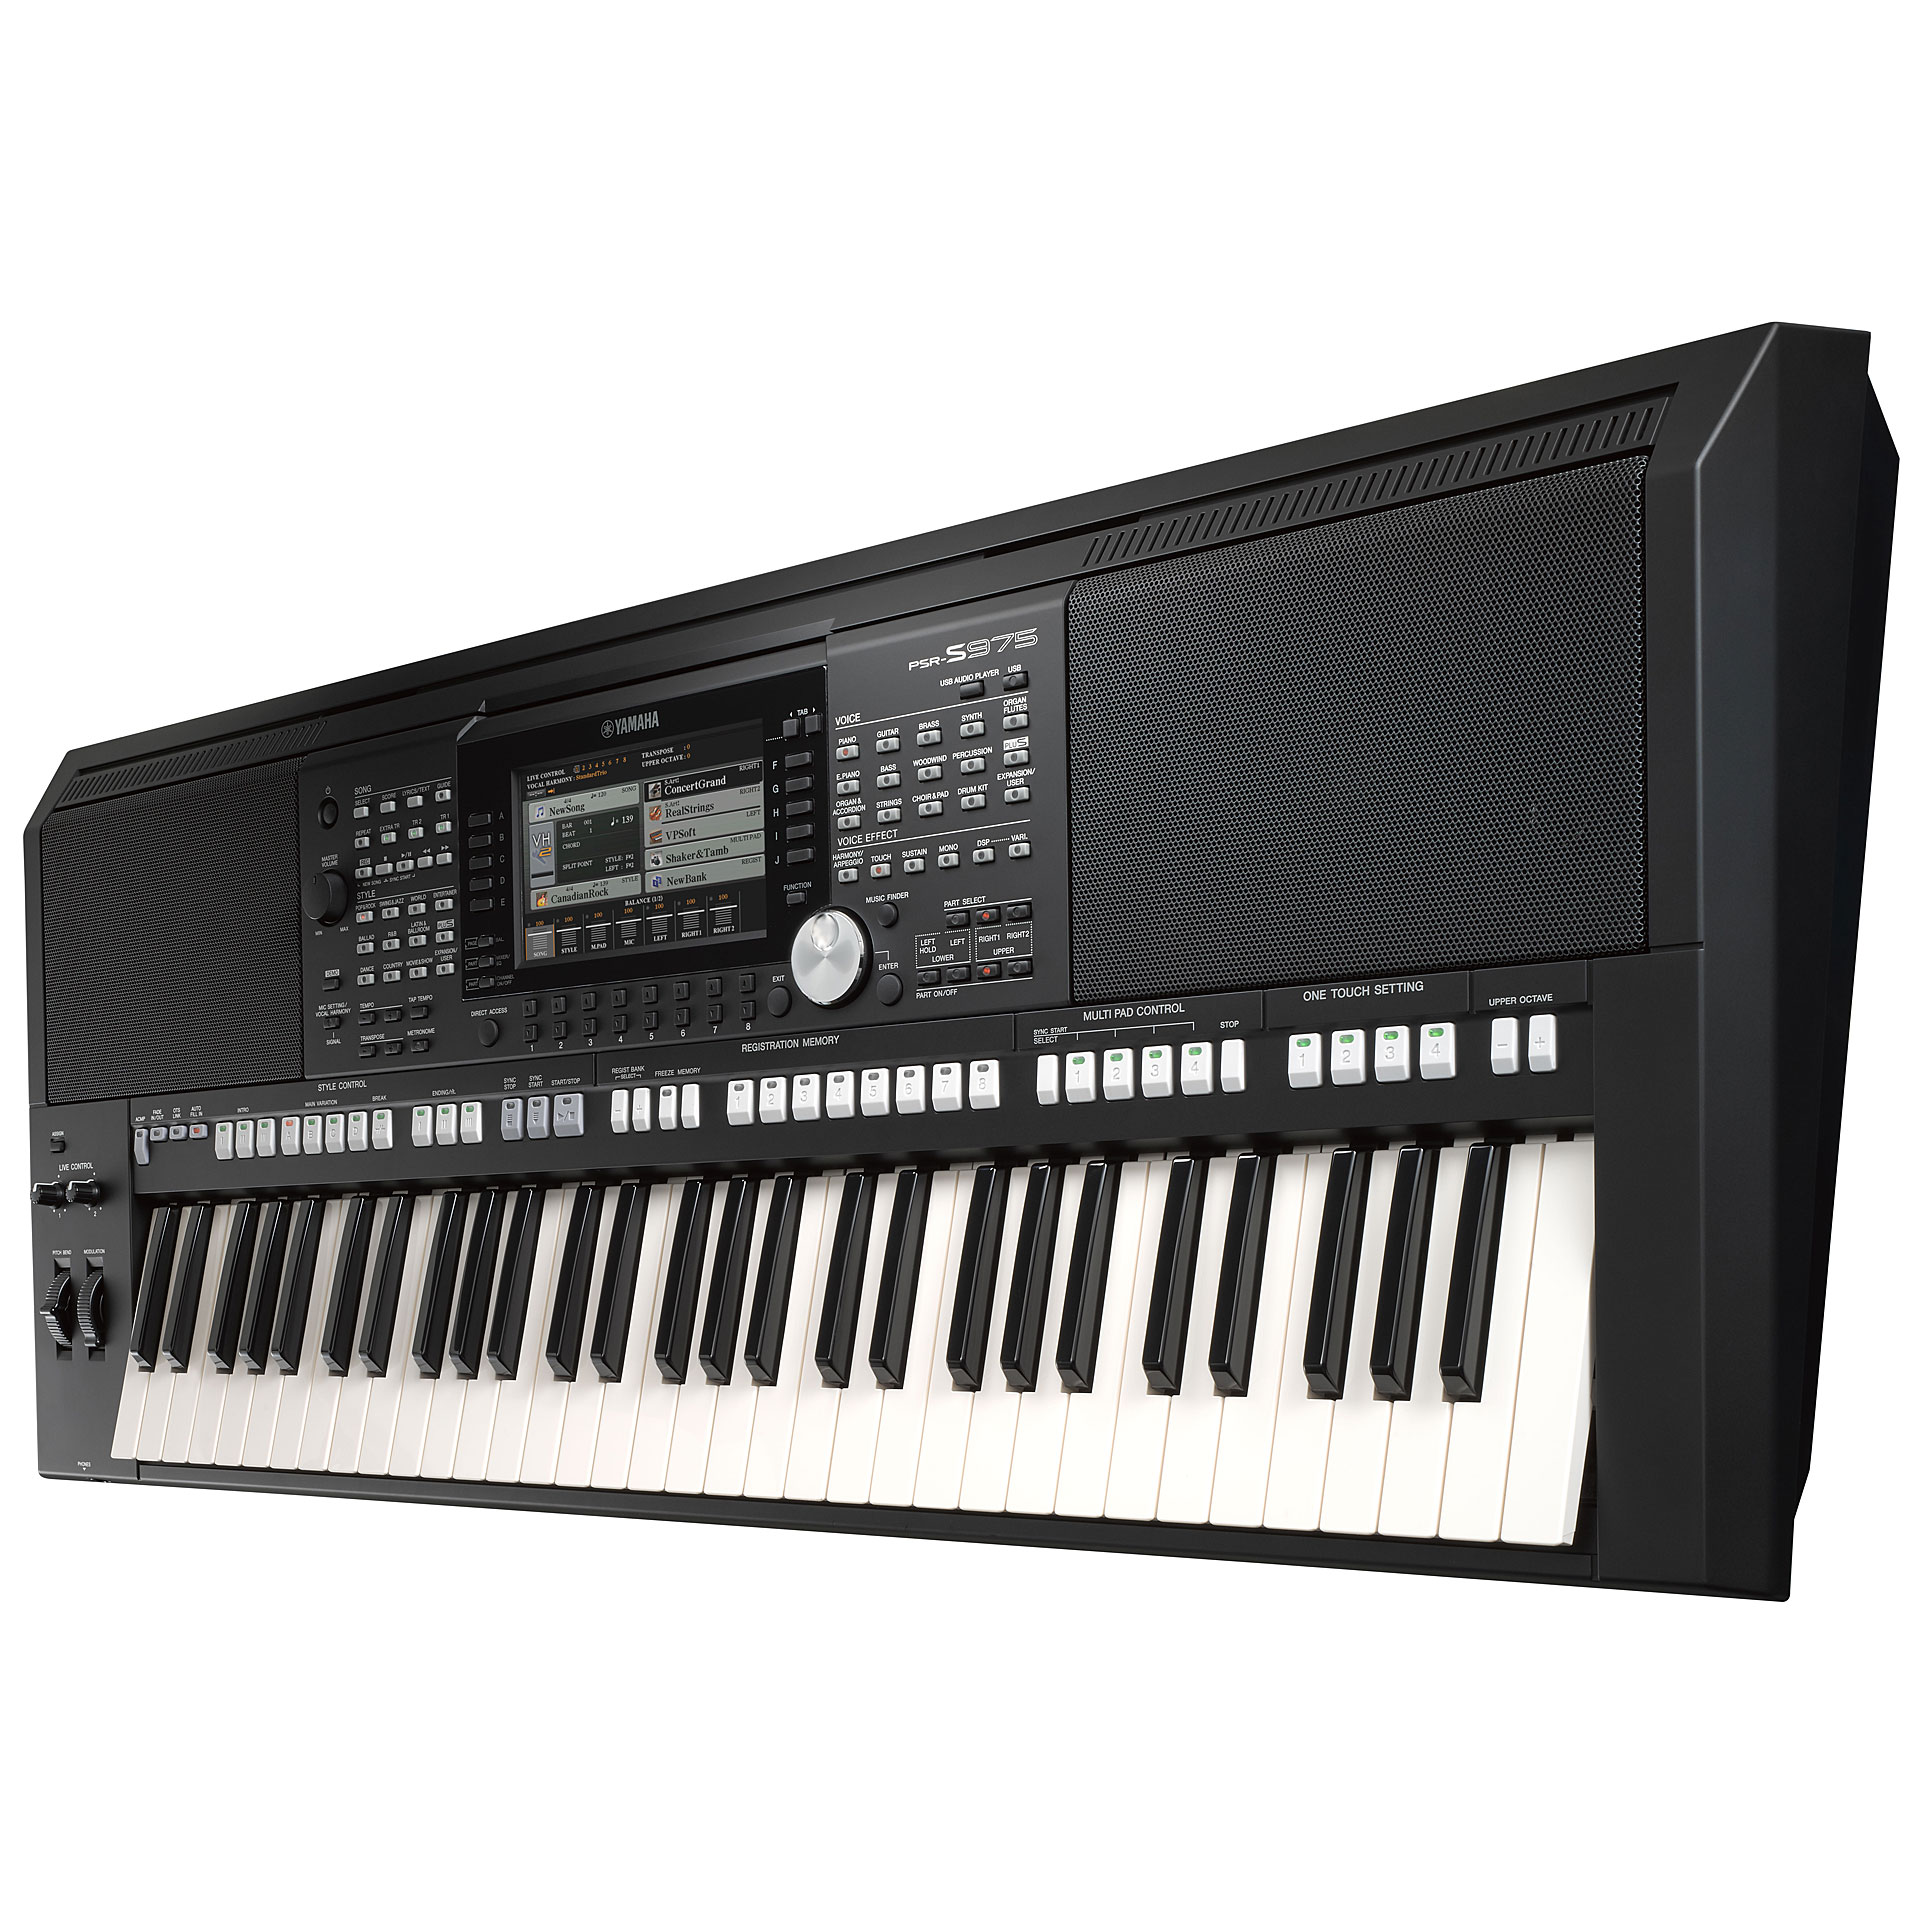 Psr   Yamaha Keyboard Manual